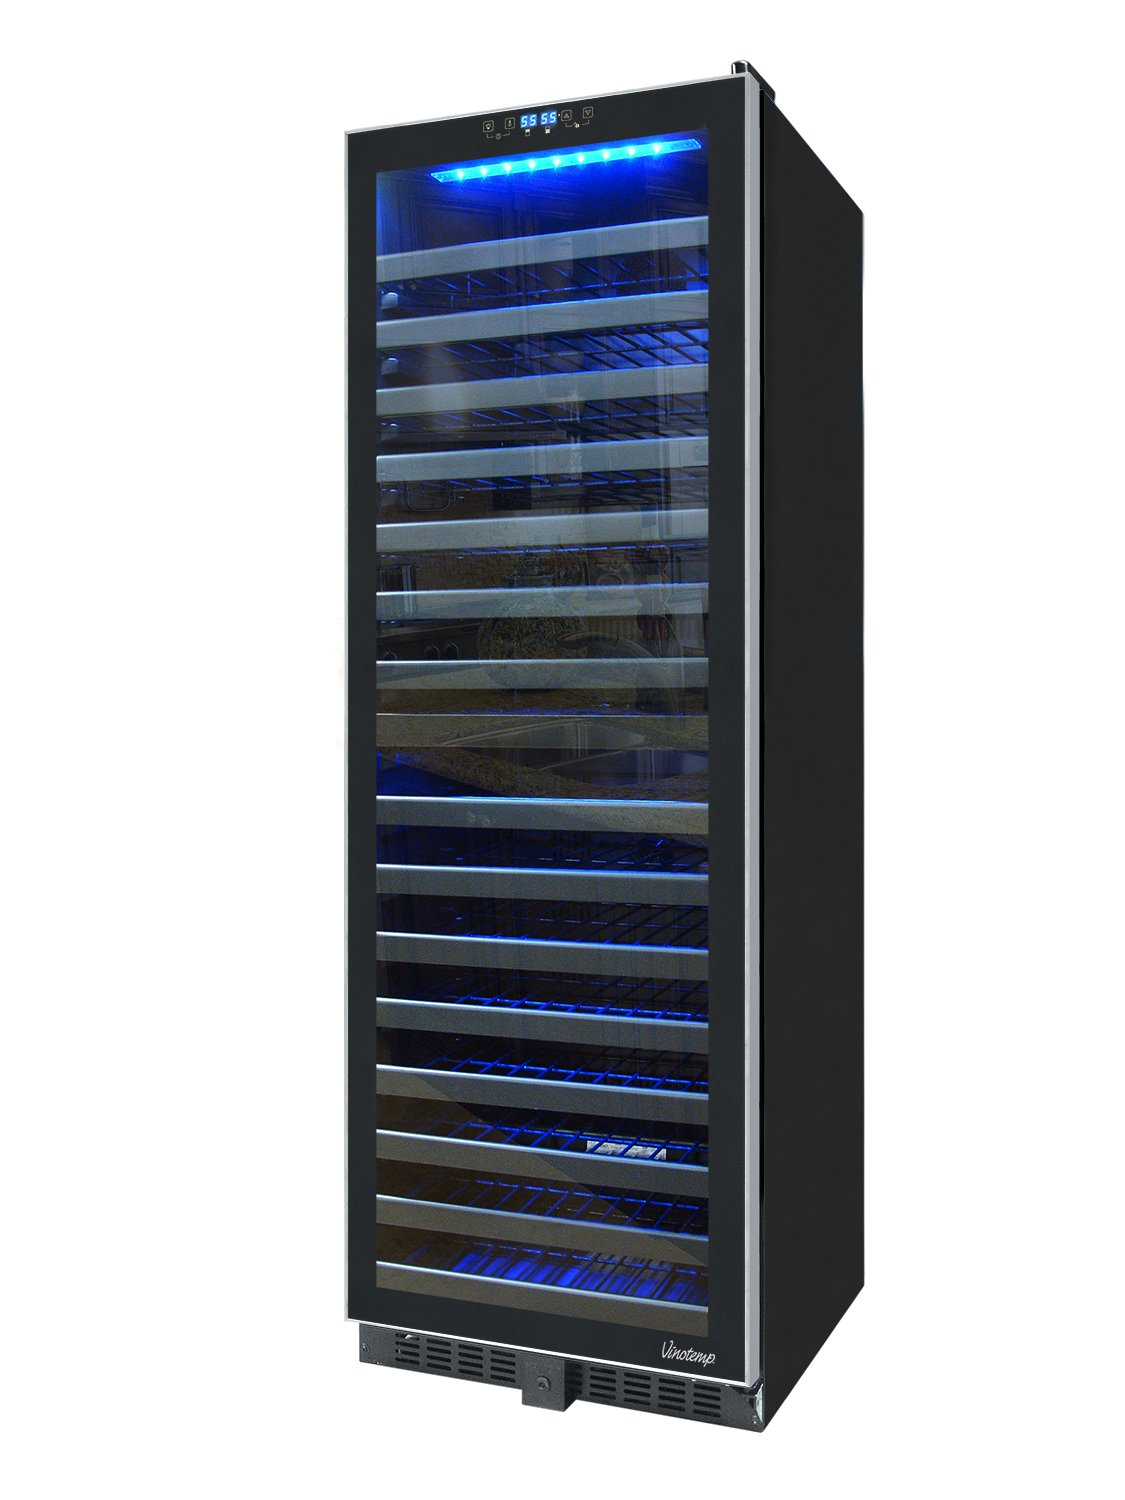 Vinotemp VNTVT-145TSST-2Z 142 Bottle Dual-Zone Wine Cooler with Seamless Glass Door and Stainless Trim by Vinotemp